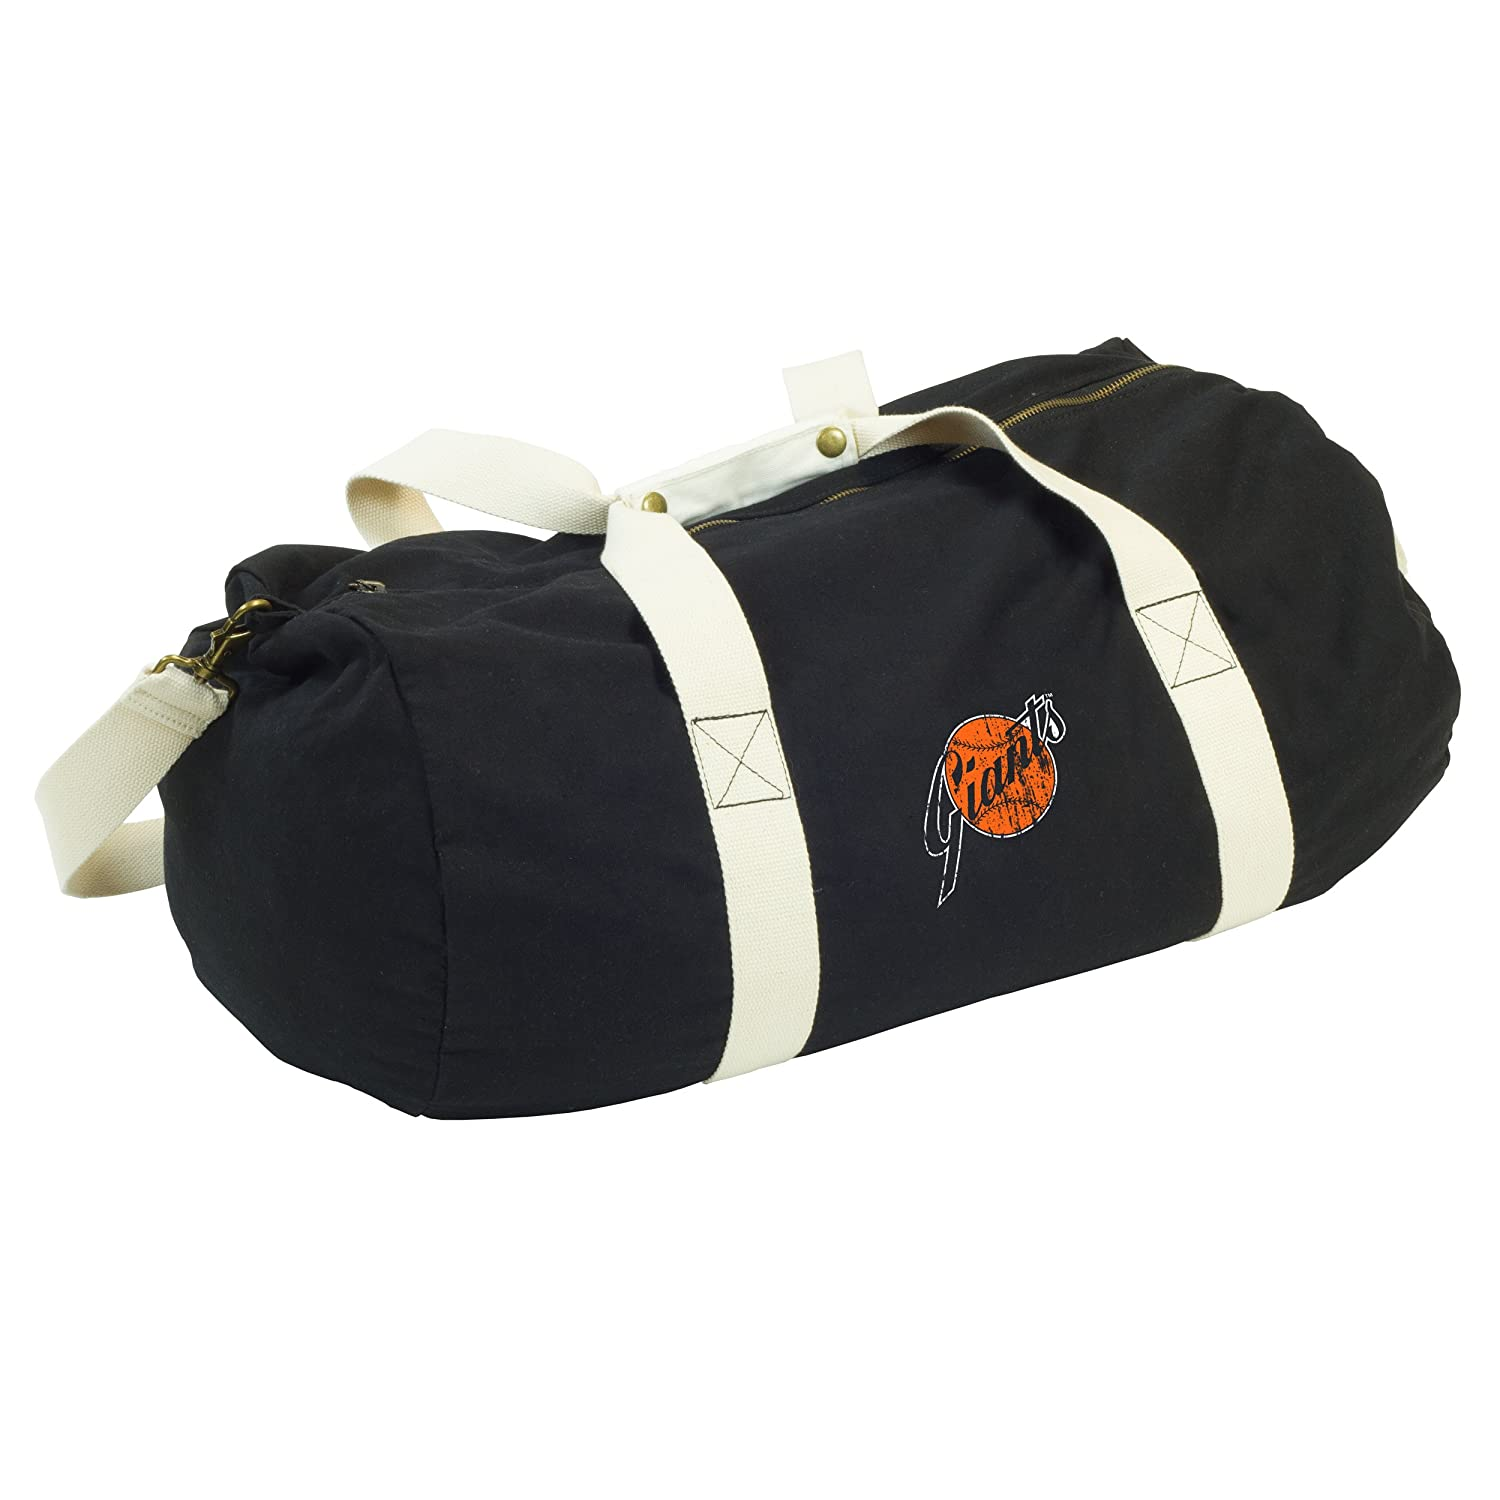 MLB San Francisco Giants Cooperstown Sandlot Duffel Bag, Black what was the san francisco earthquake